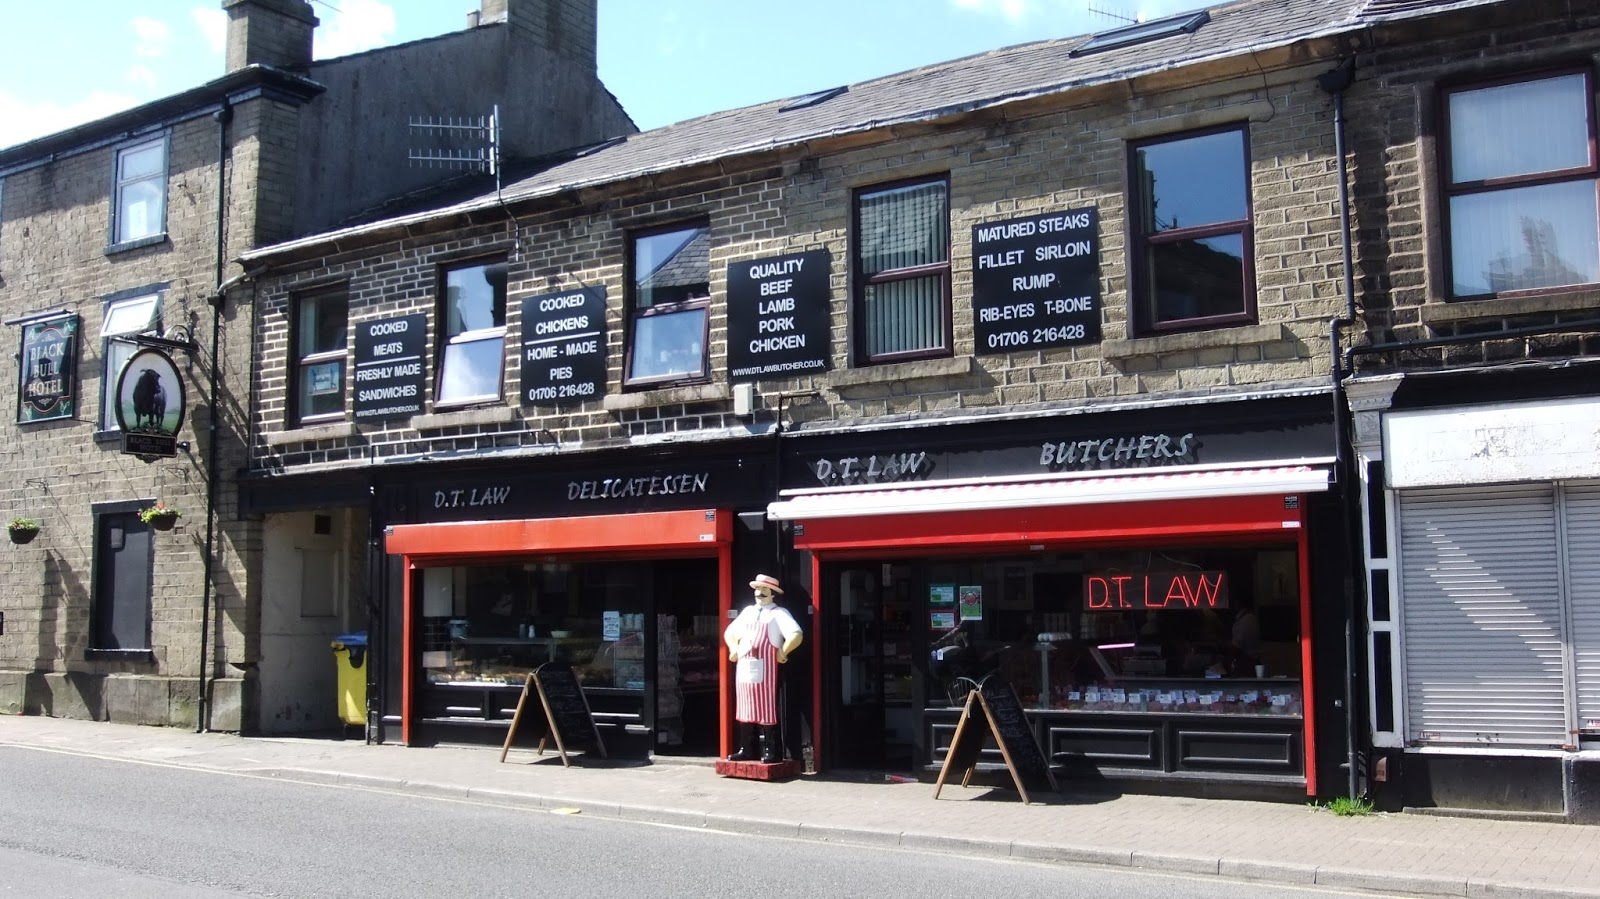 DT Law Butchers